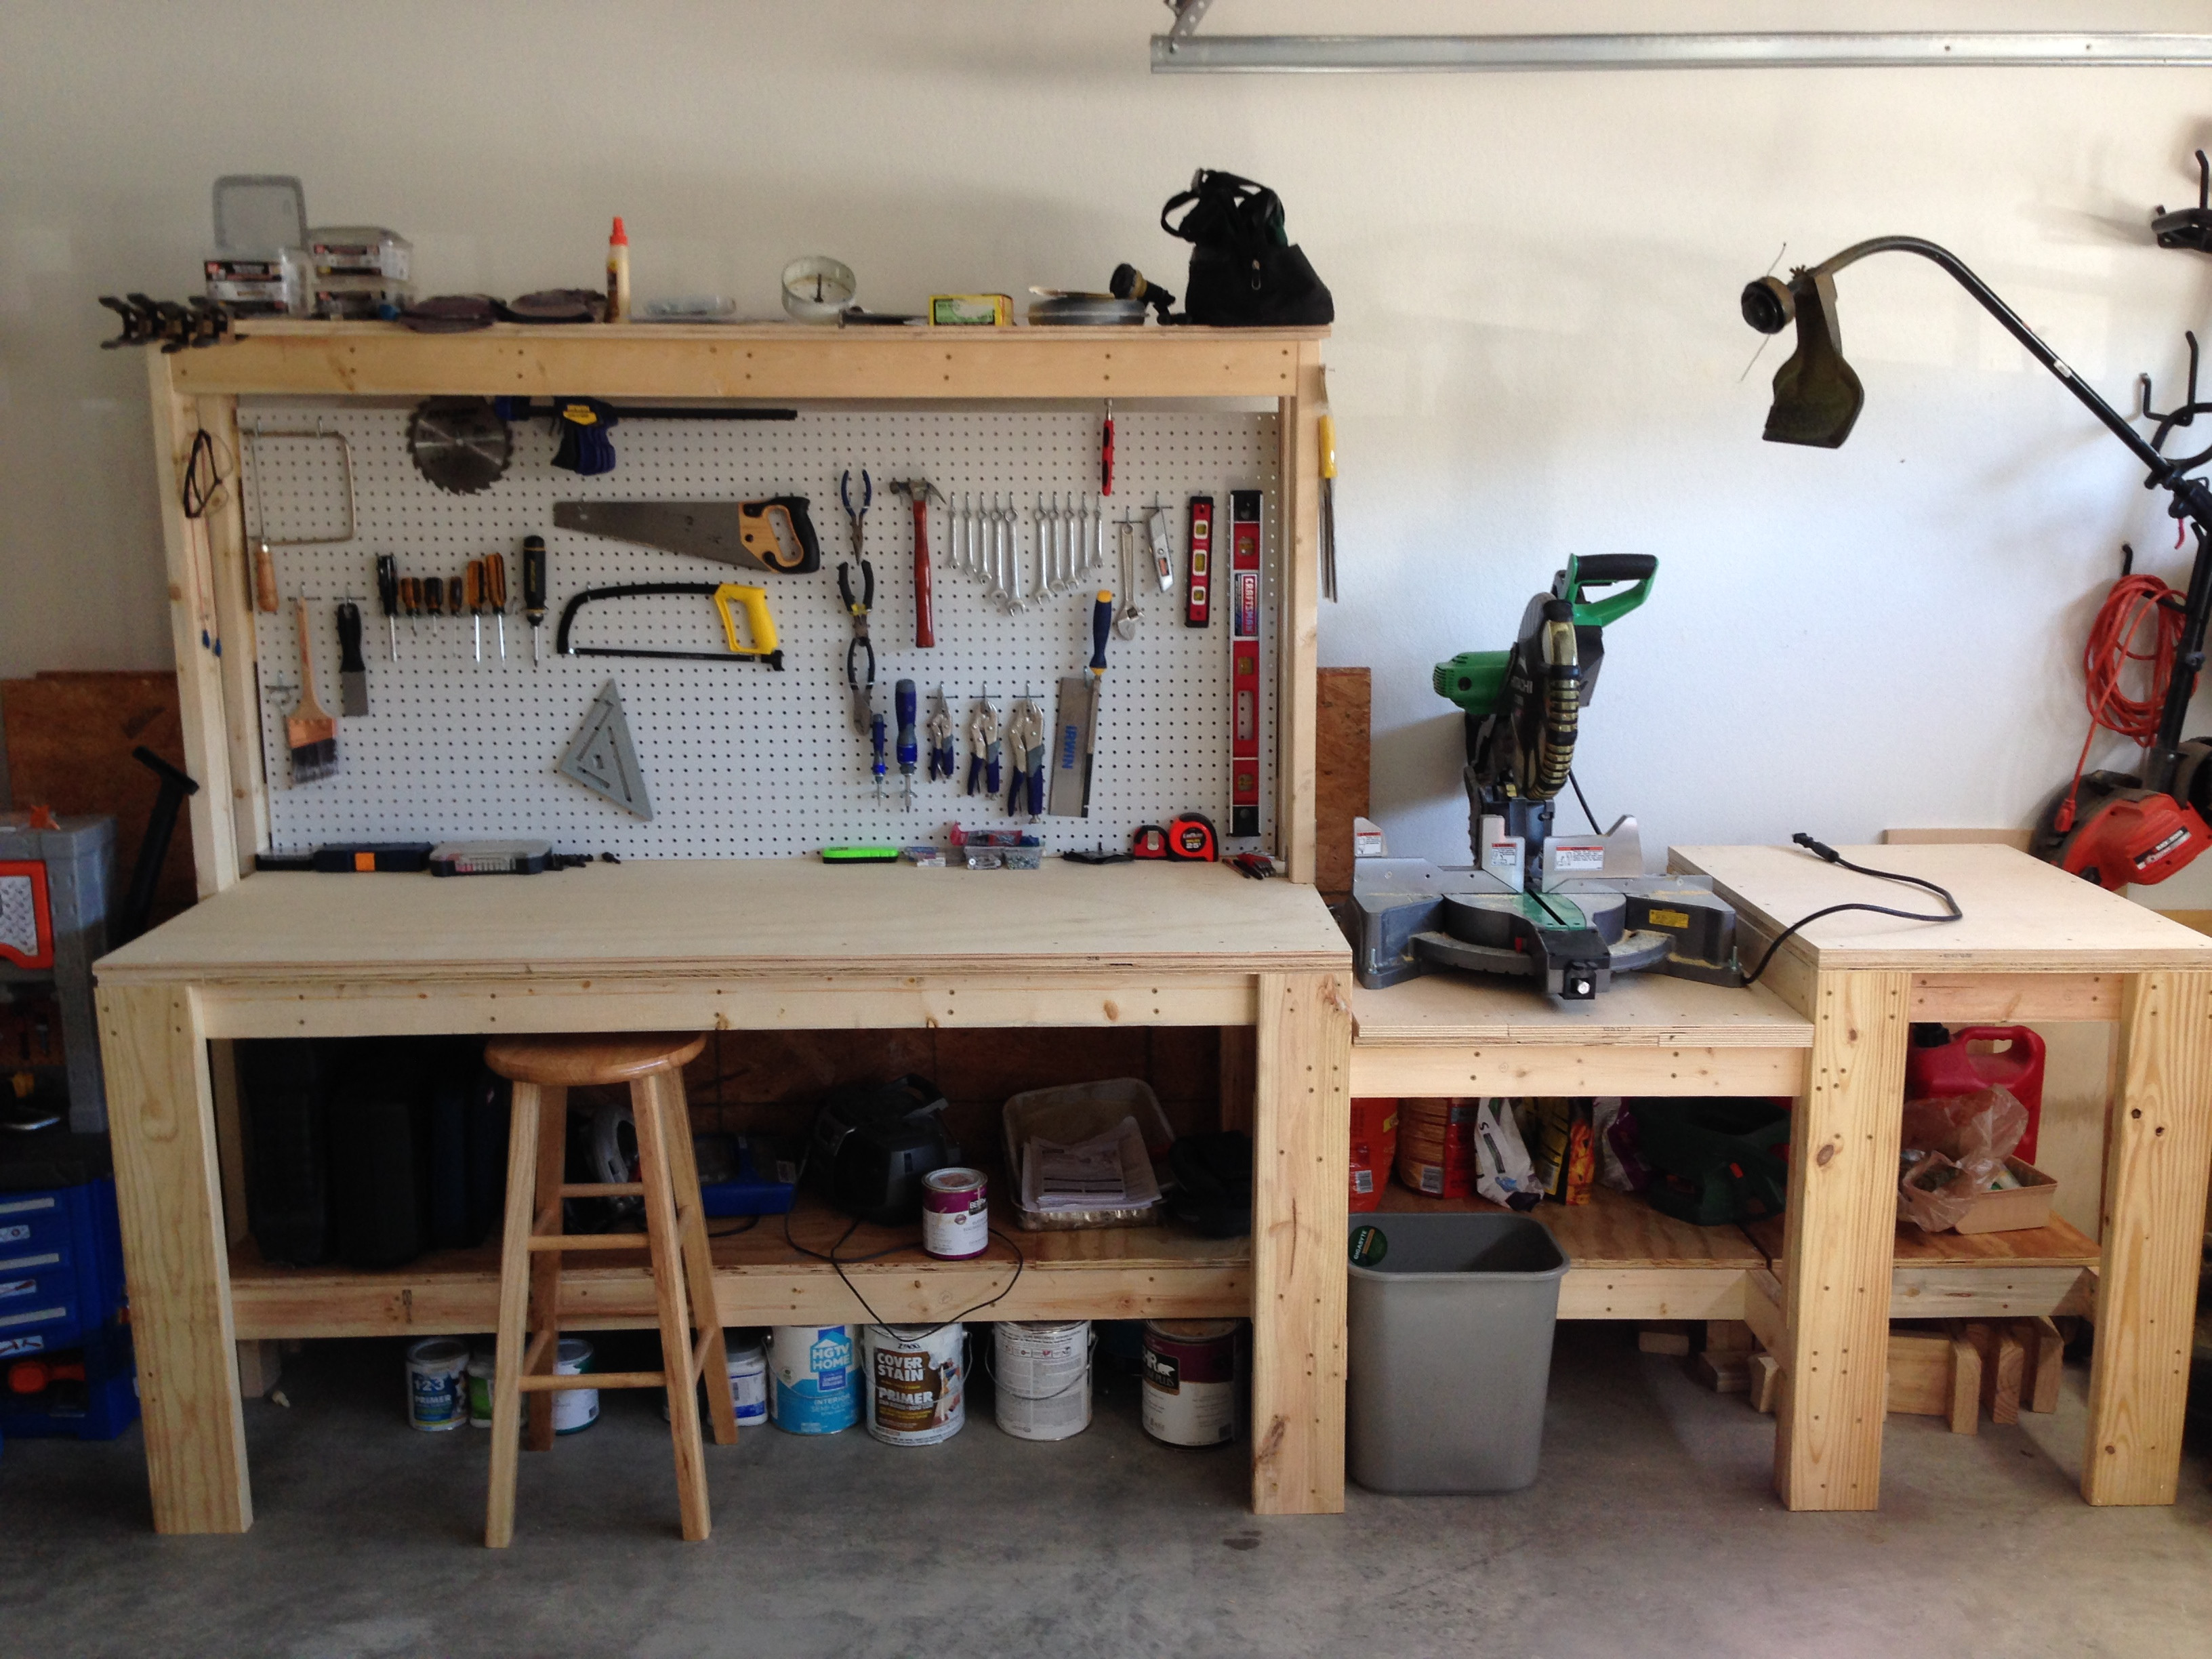 Hinged Workbench | Wall Mounted Folding Workbench | Space Saving Workbench